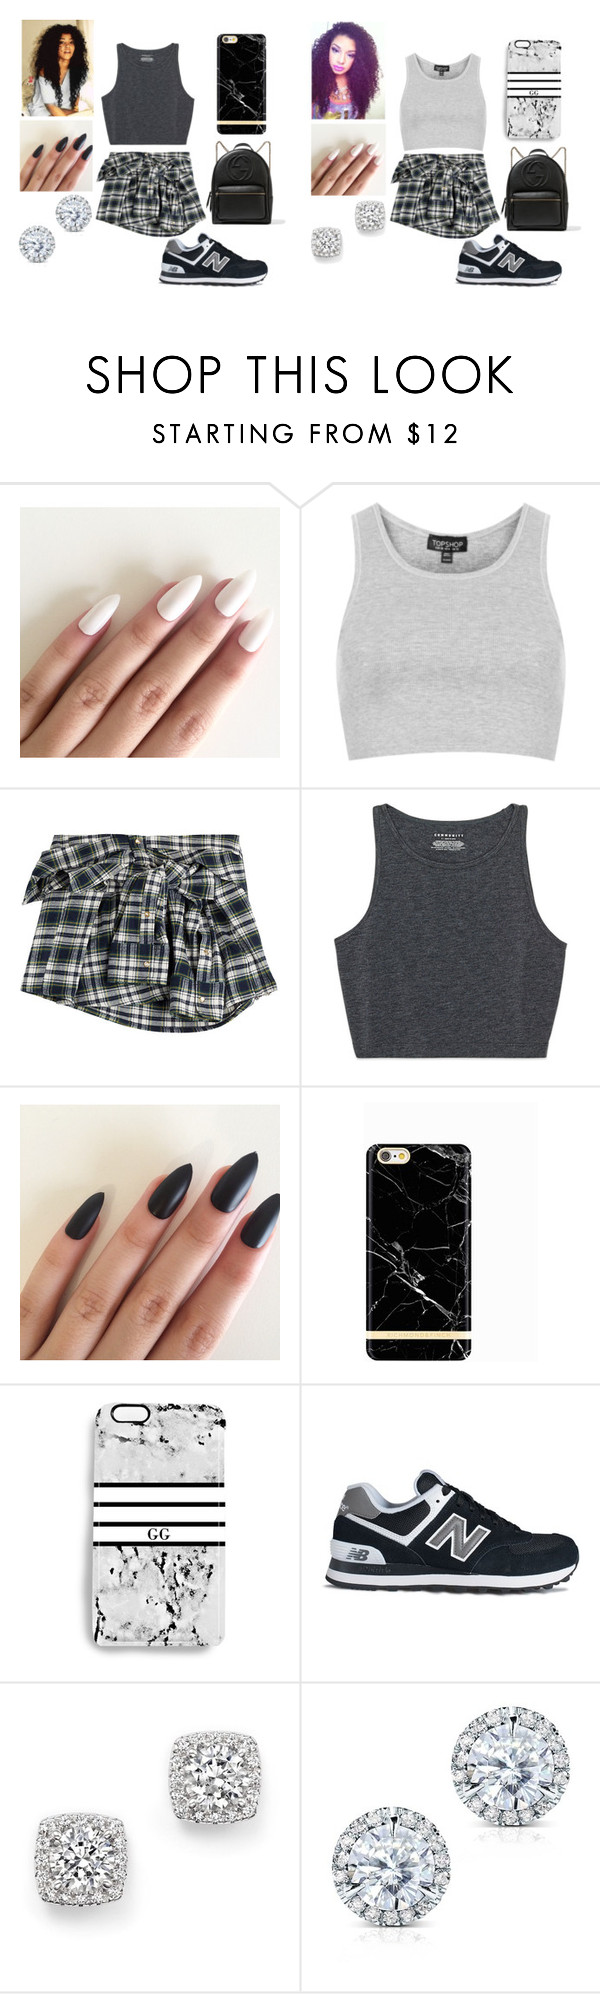 """Summer Vacation"" by aminataremy ❤ liked on Polyvore featuring Topshop, Faith Connexion, Richmond & Finch, Rianna Phillips, New Balance, Bloomingdale's, Kobelli and Gucci"